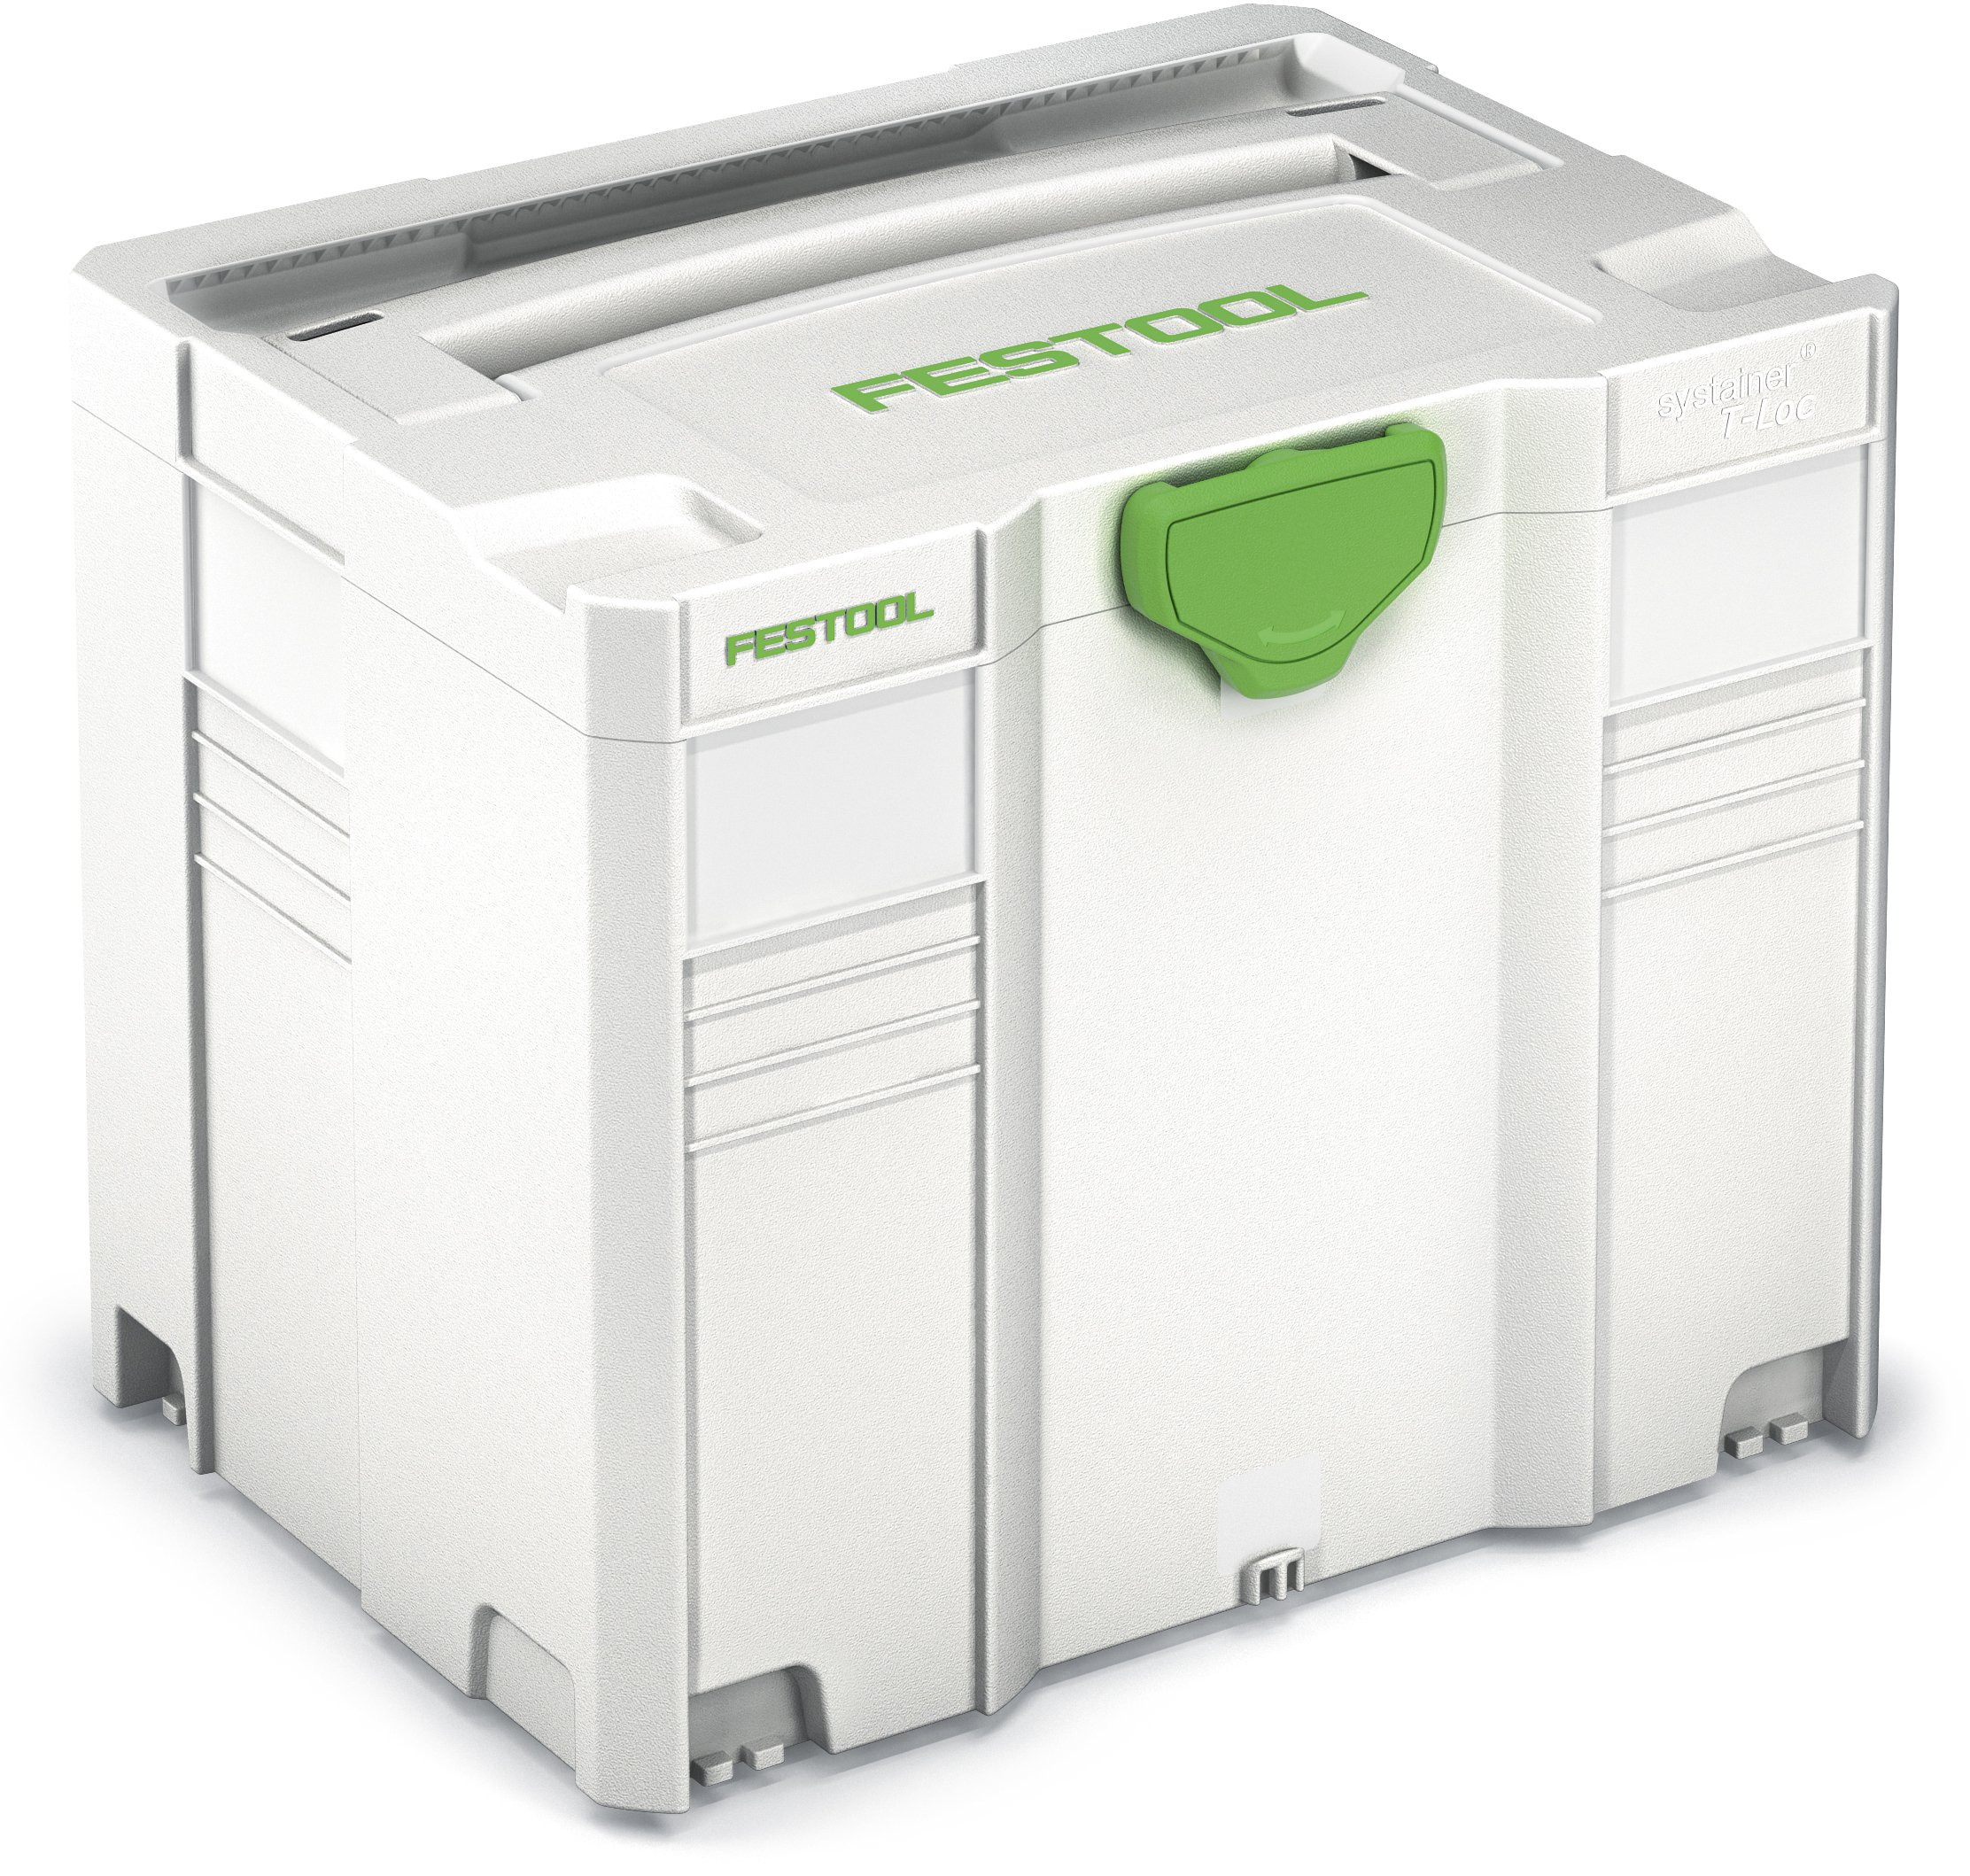 Festool 497566 Systainer SYS 4 Tool and Accessory Storage Unit